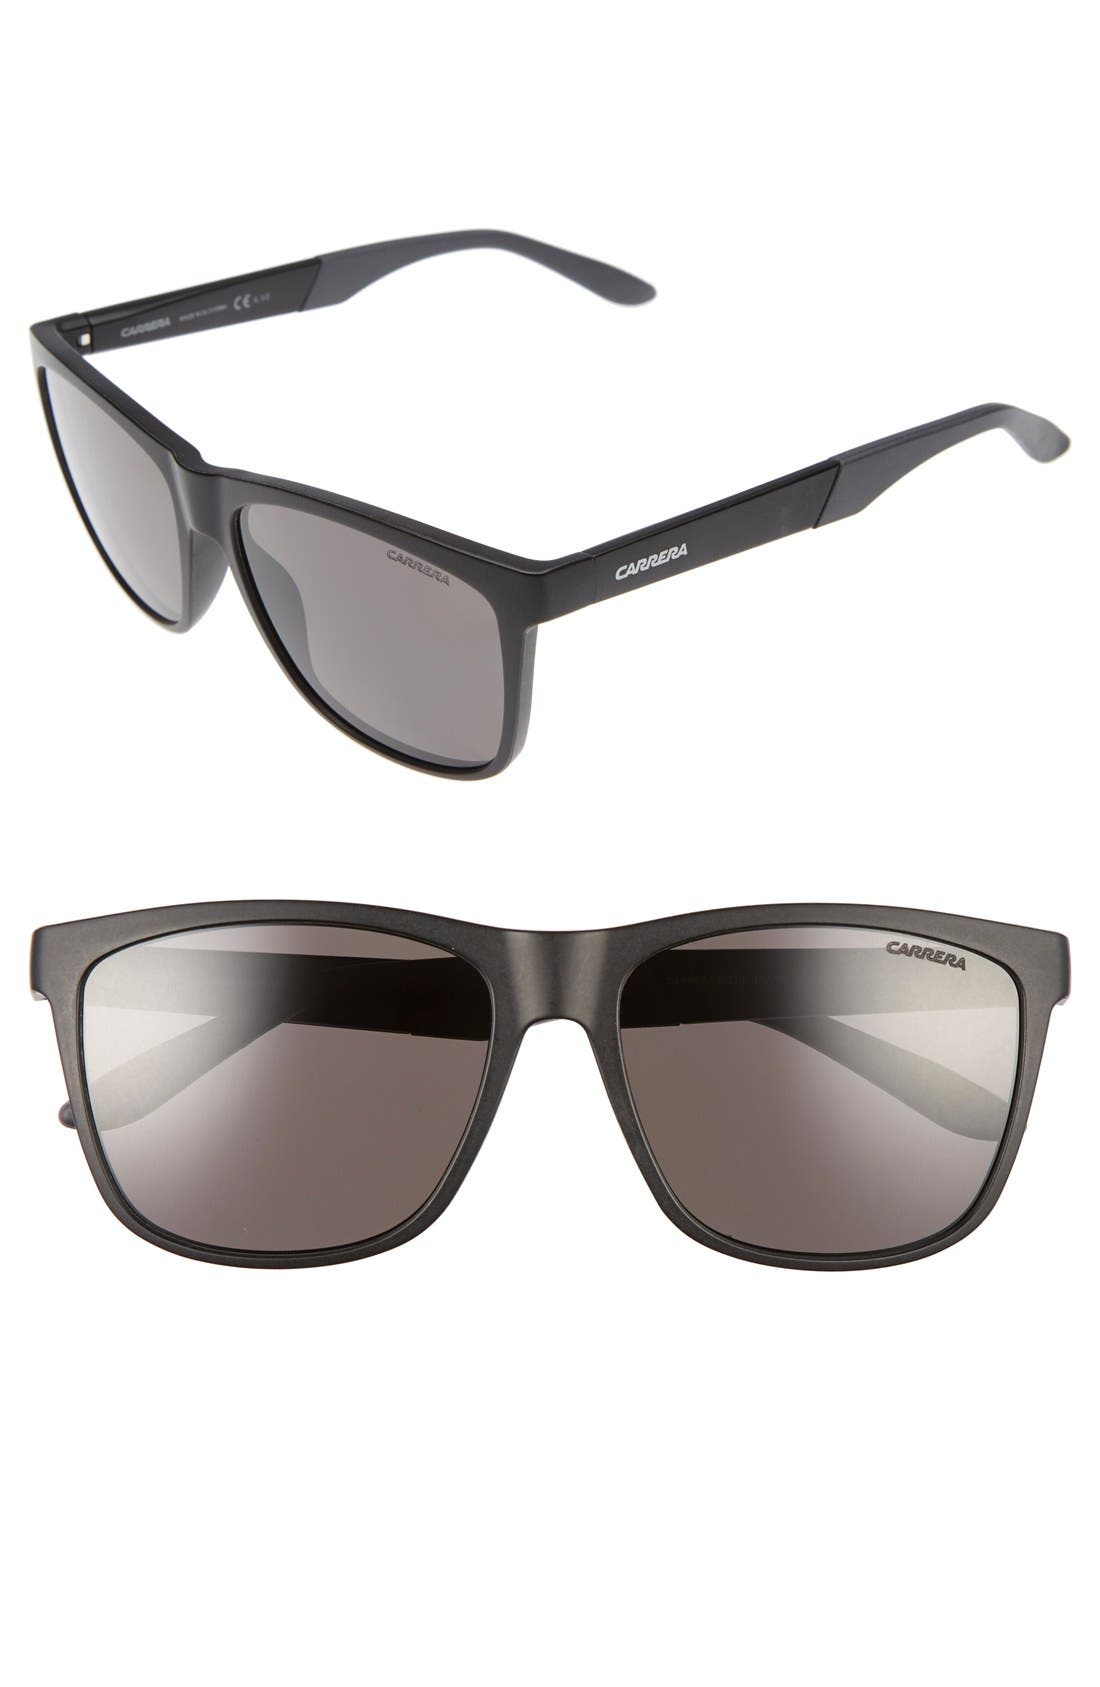 Alternate Image 1 Selected - Carrera Eyewear 8022/S 56mm Polarized Sunglasses